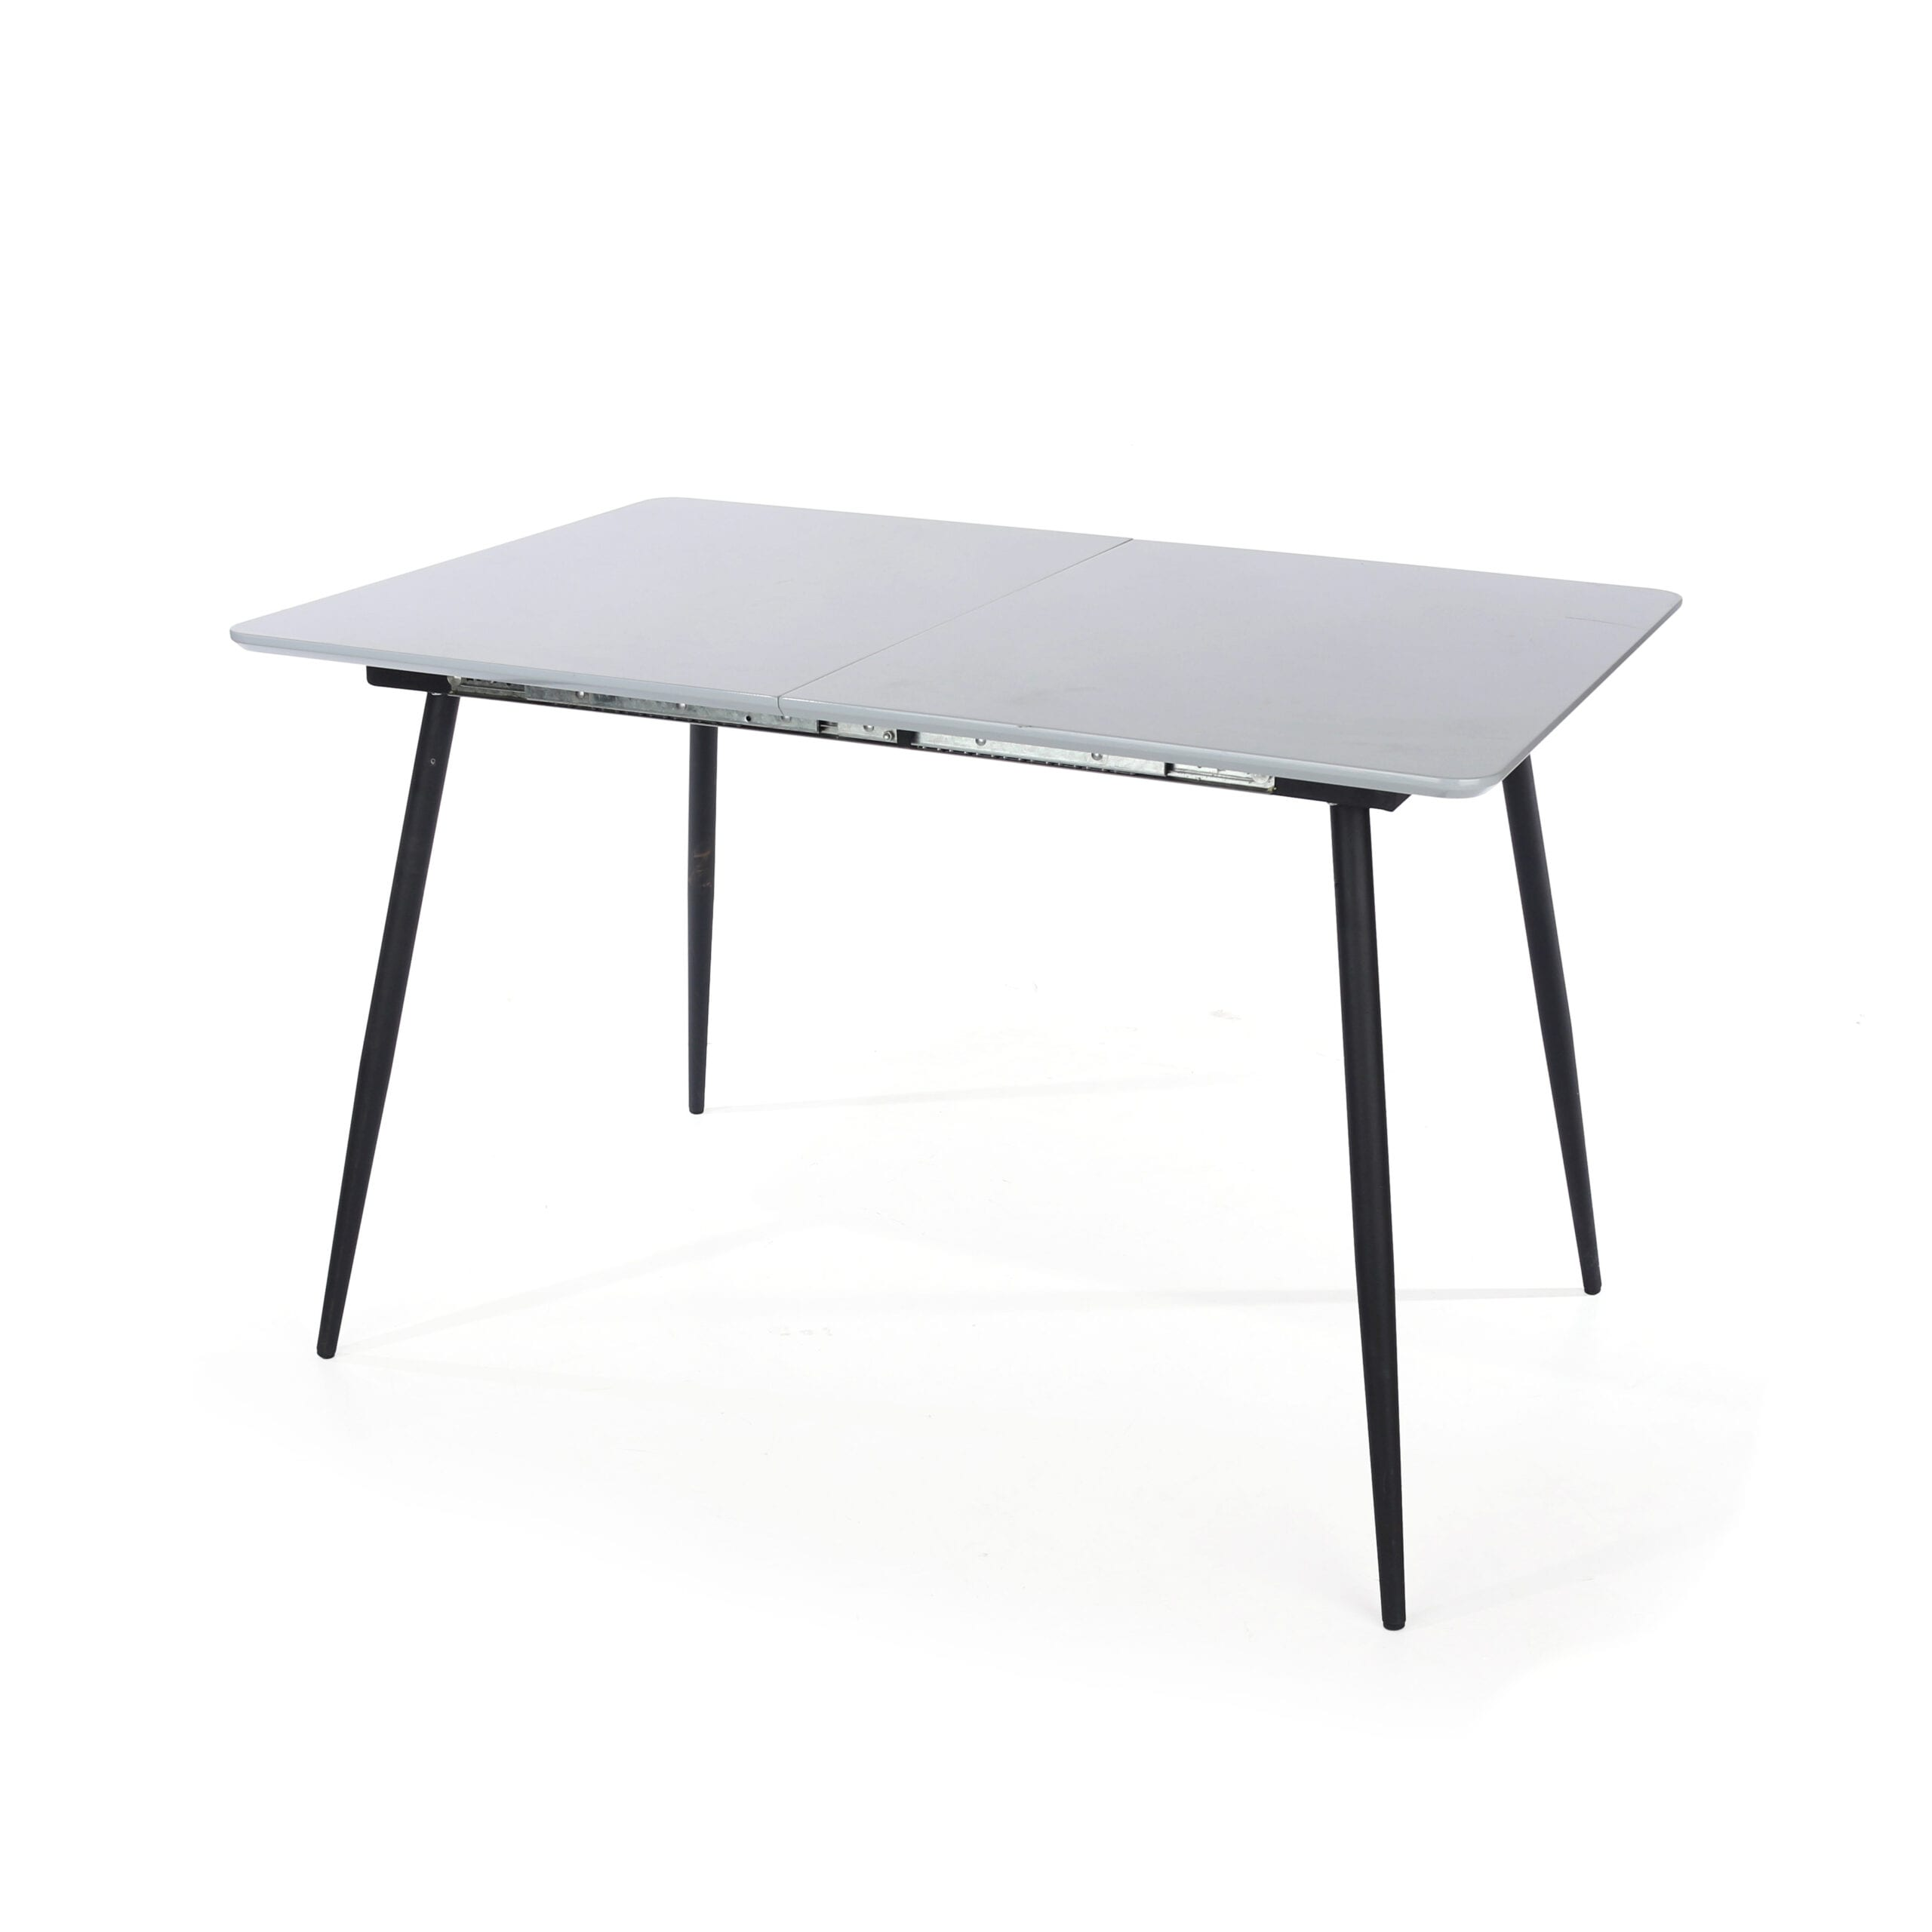 Drake rectangular exttending table with metal legs